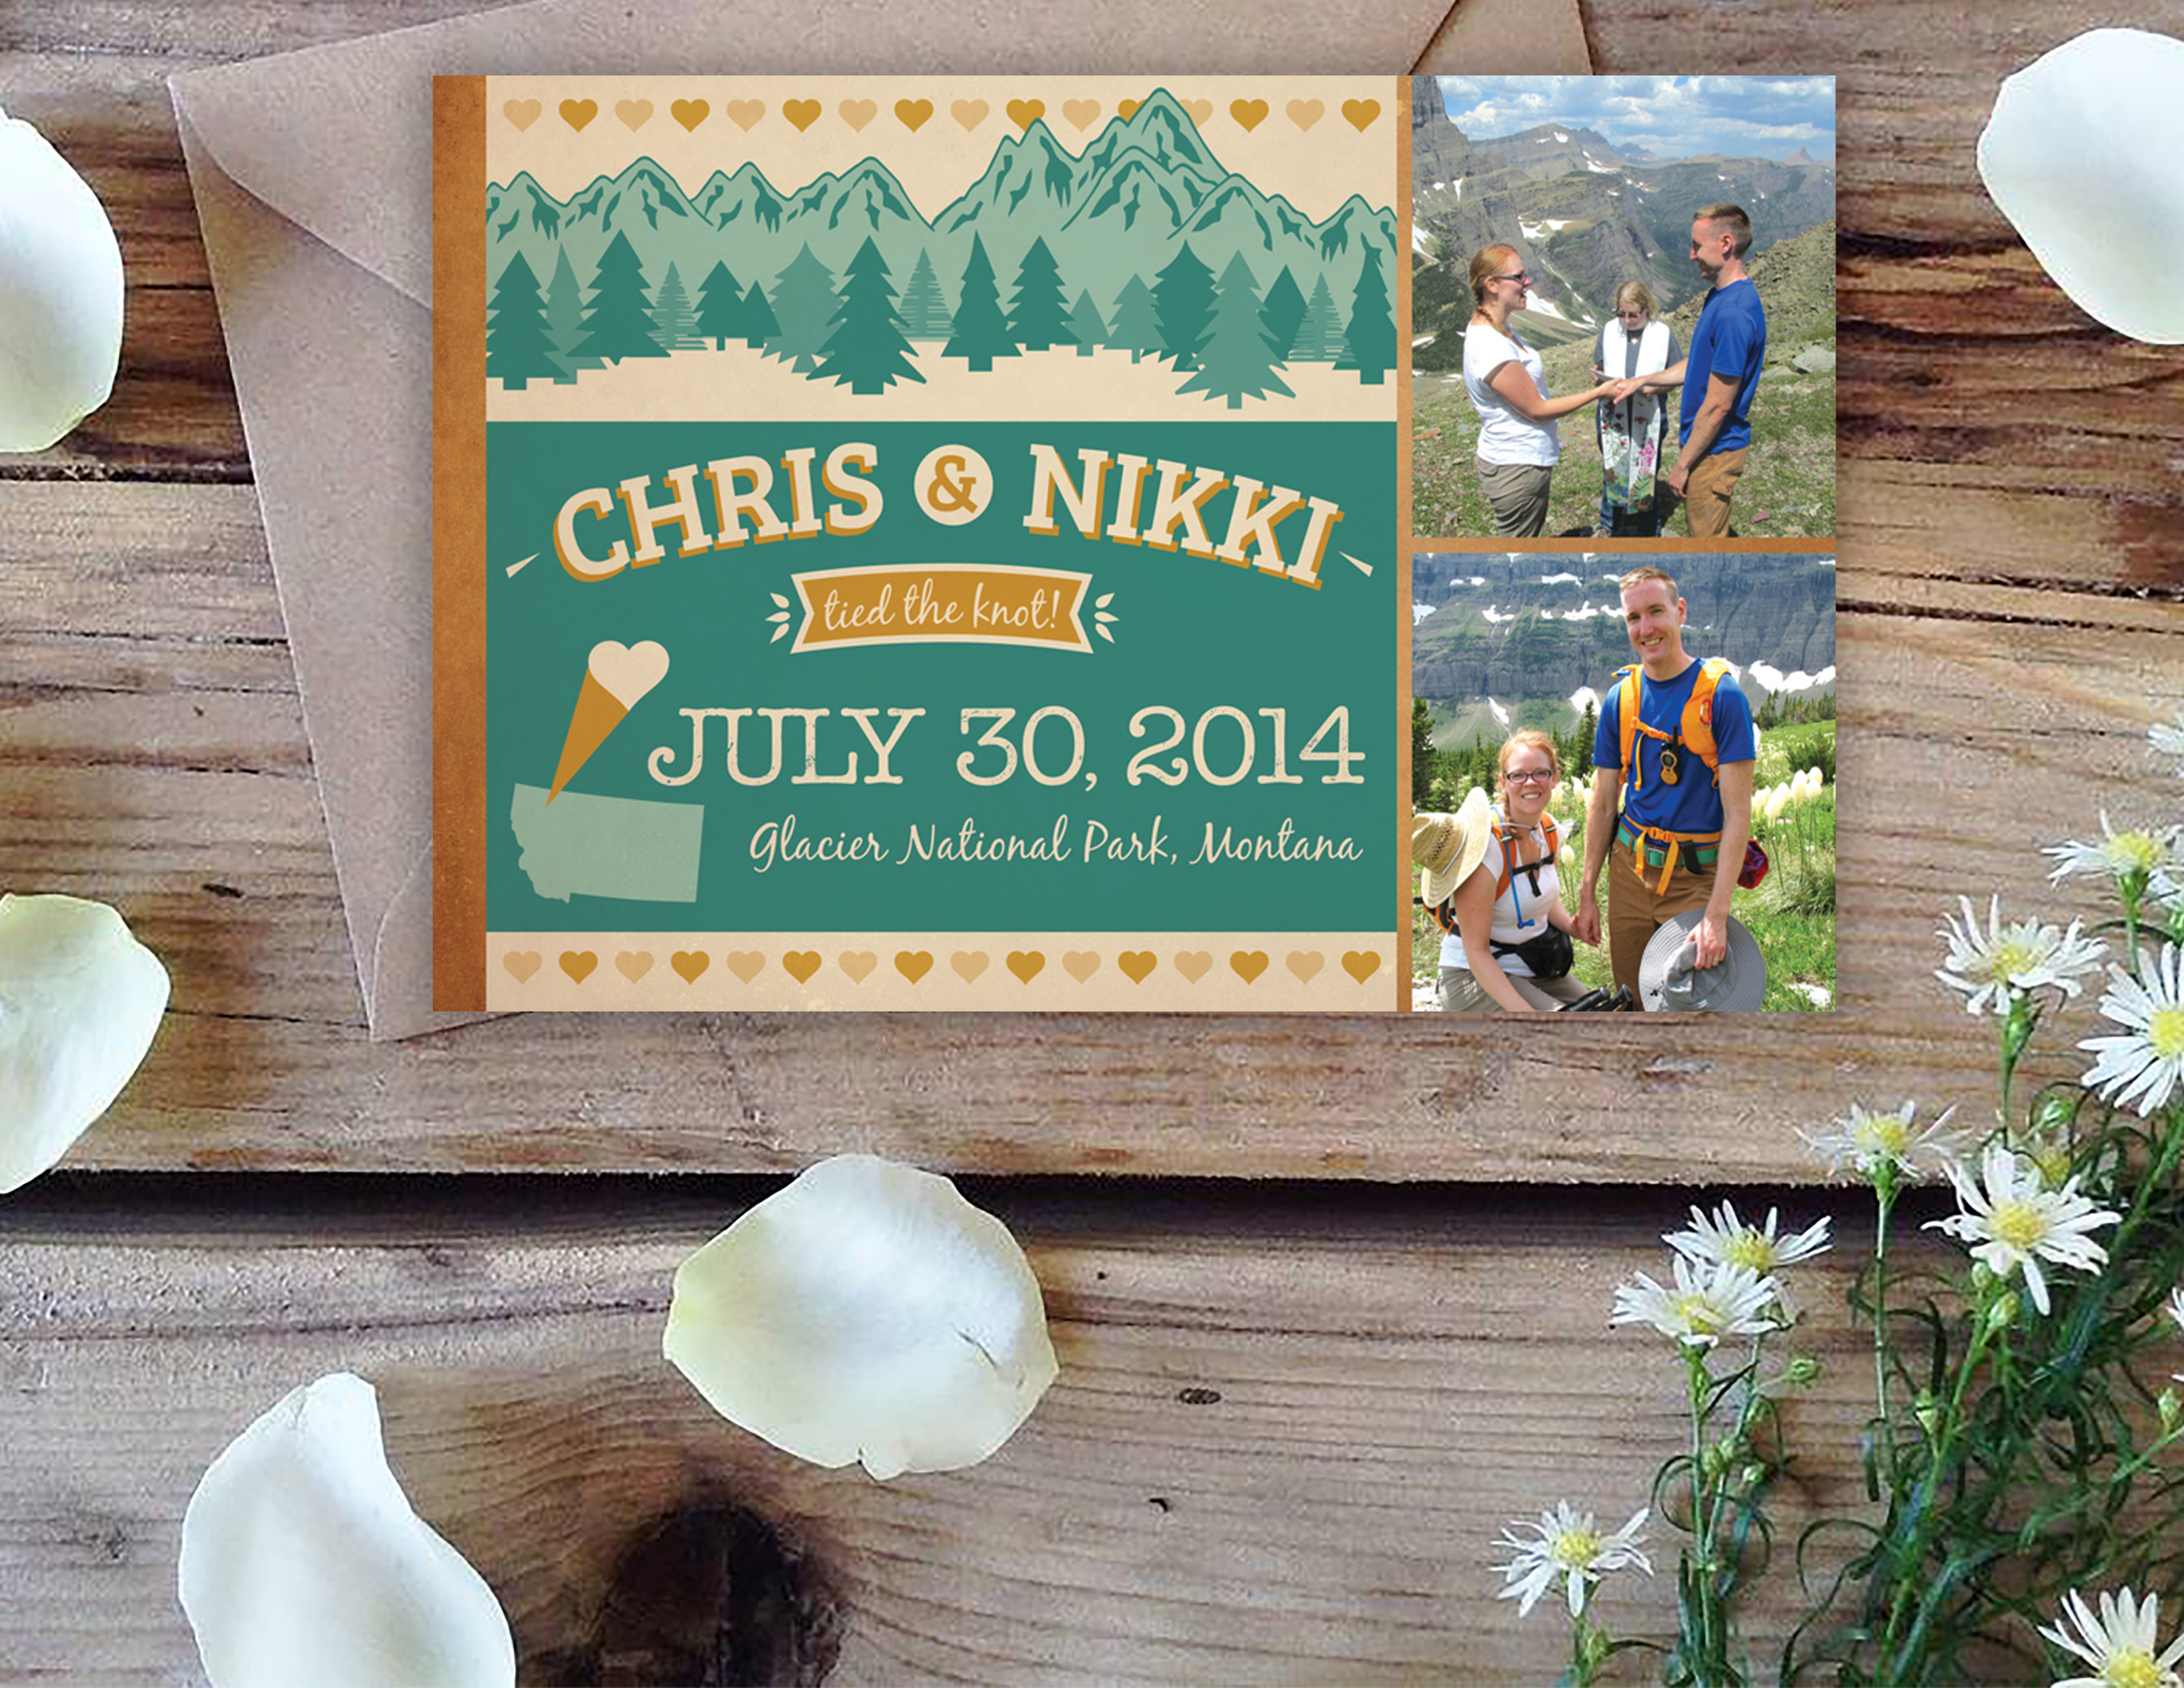 Nikki & Chris are adventurers.  They knew when they got engaged they wanted to have an intimate service atop Glacier National Park in Montana. This wedding announcement went out to all their family and friends after their nuptials.